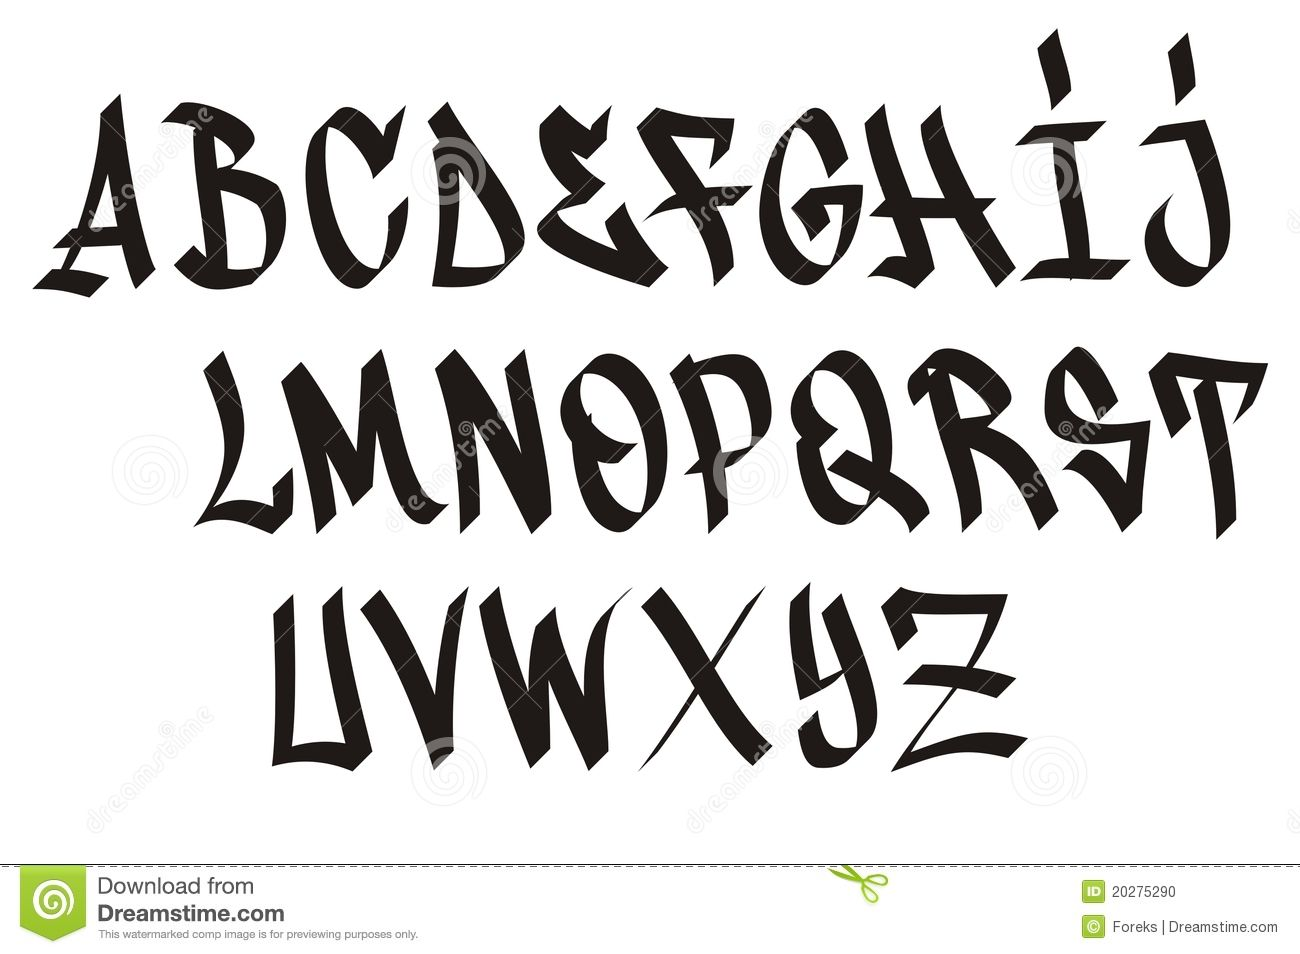 Images For > 3d Graffiti Fonts Alphabet graffiti art